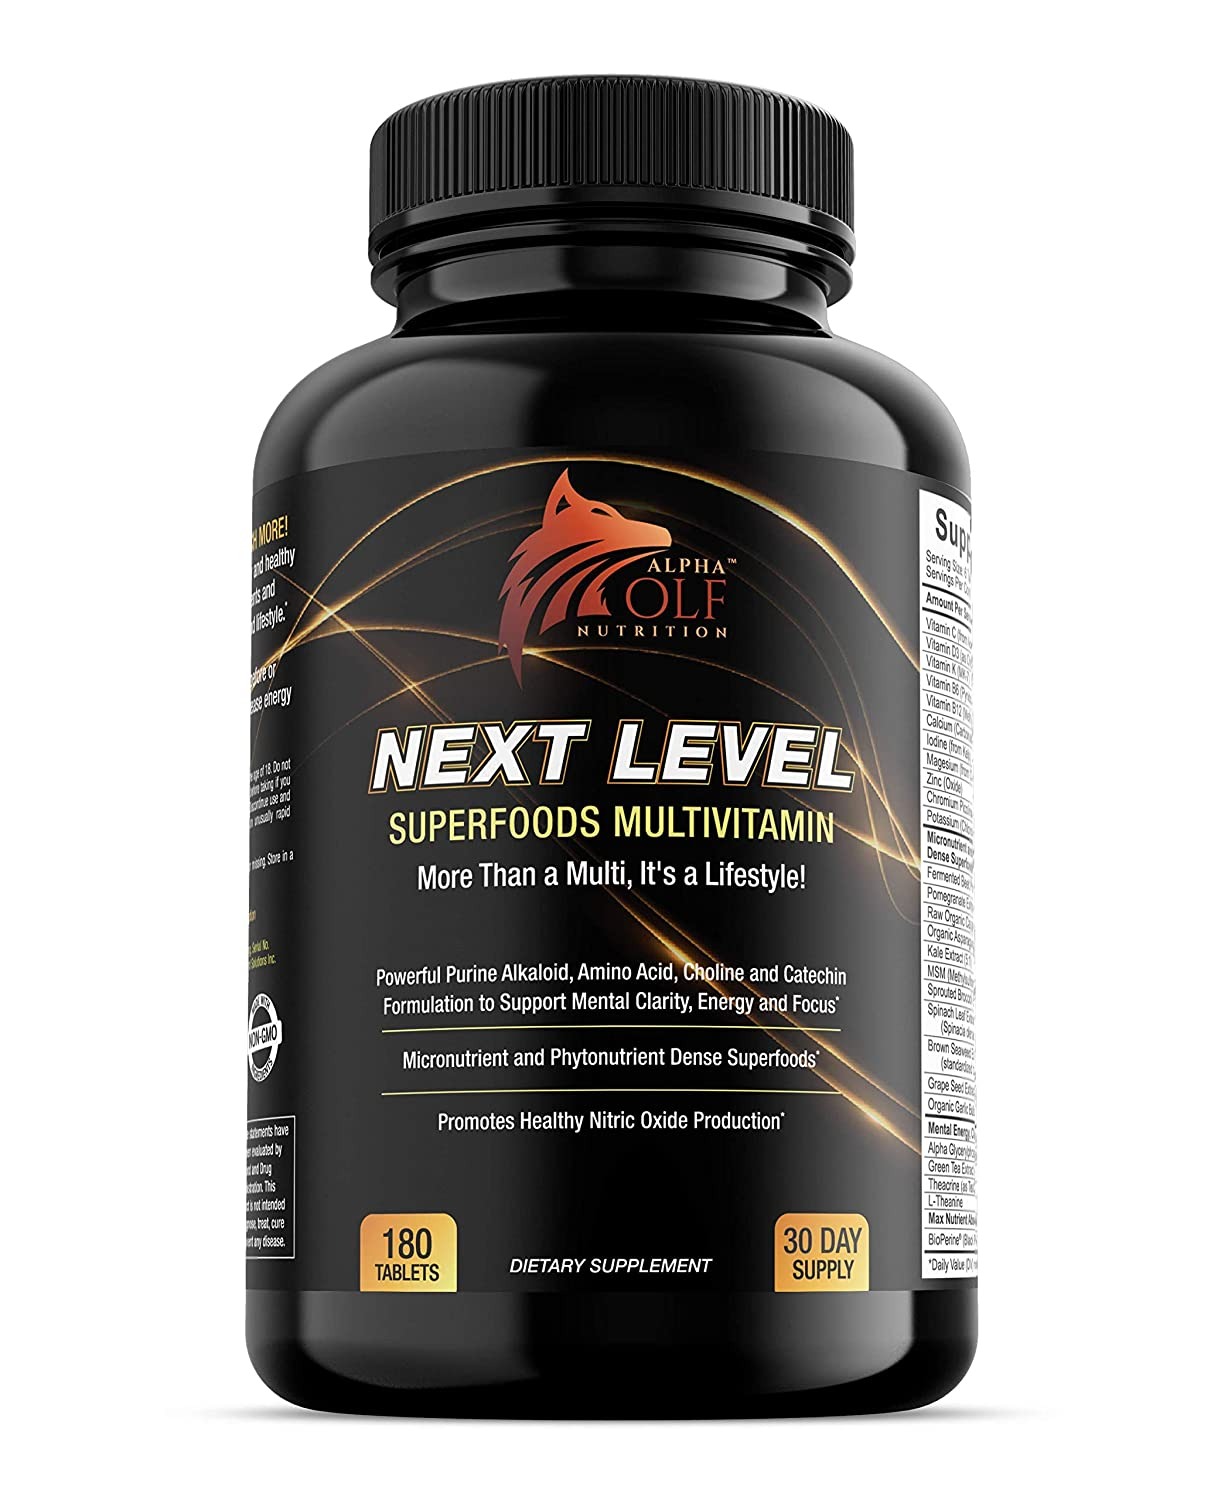 Next Level SuperFoods Multivitamin – Increase Energy, Focus and Blood Flow – Beetroot, Pomegranate, Raw Cacao, Kale, Spinach, Seaweed, Green Tea, Alpha GPC, Teacrine, MSM, Sprouted Broccoli Seed